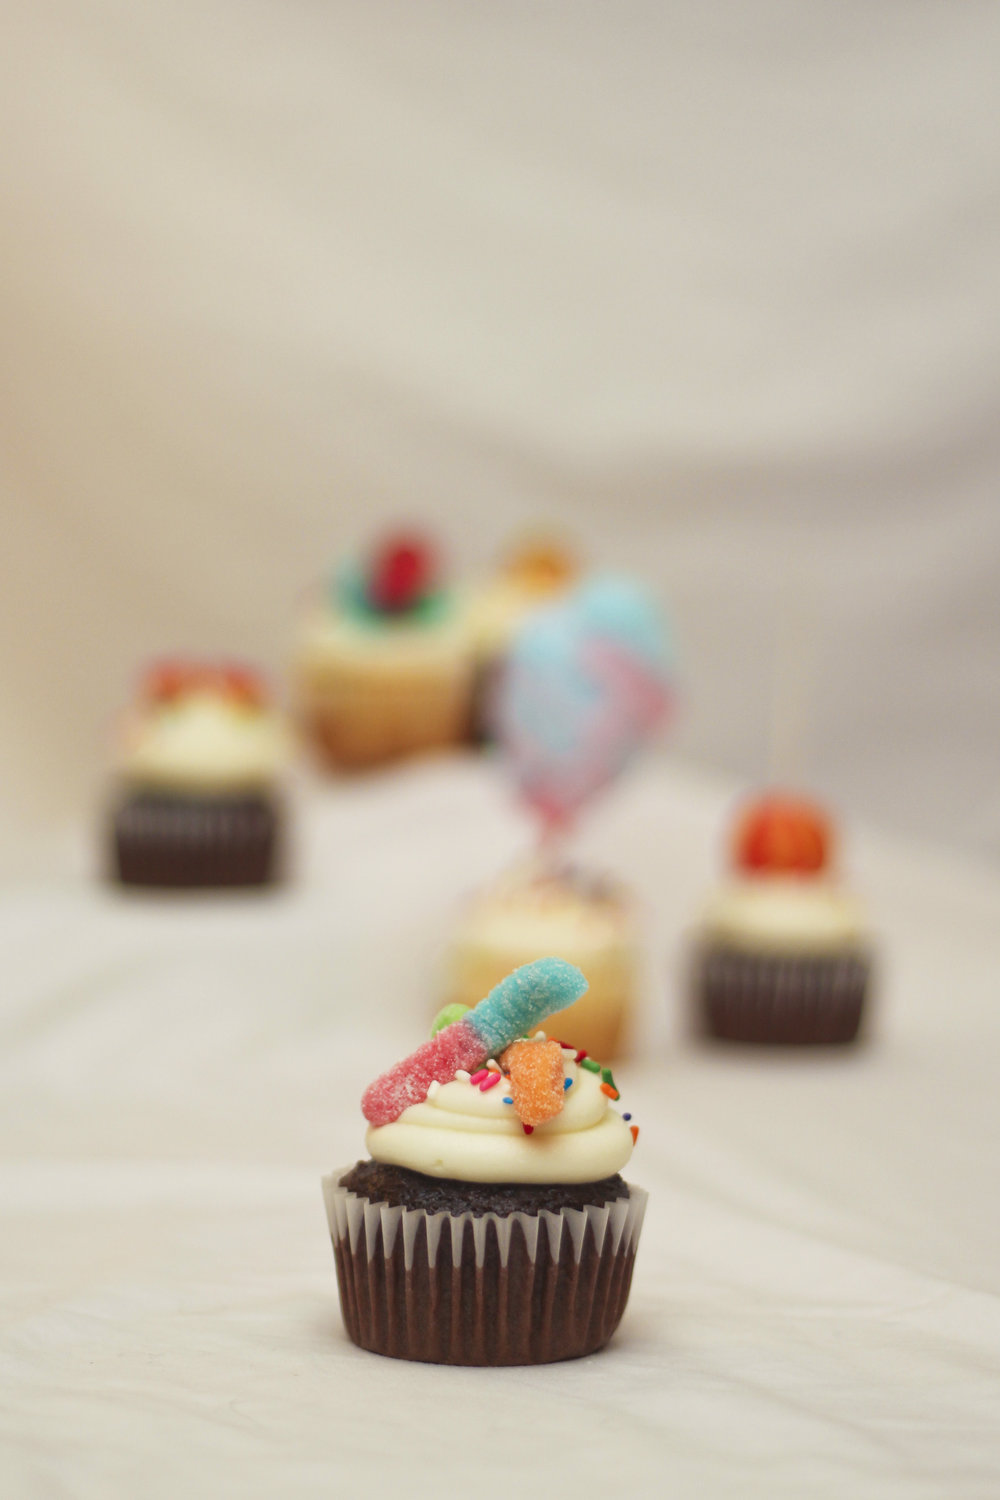 Candy themed cupcakes decorated with gummies, cotton candy, ring pops, and lollipops.